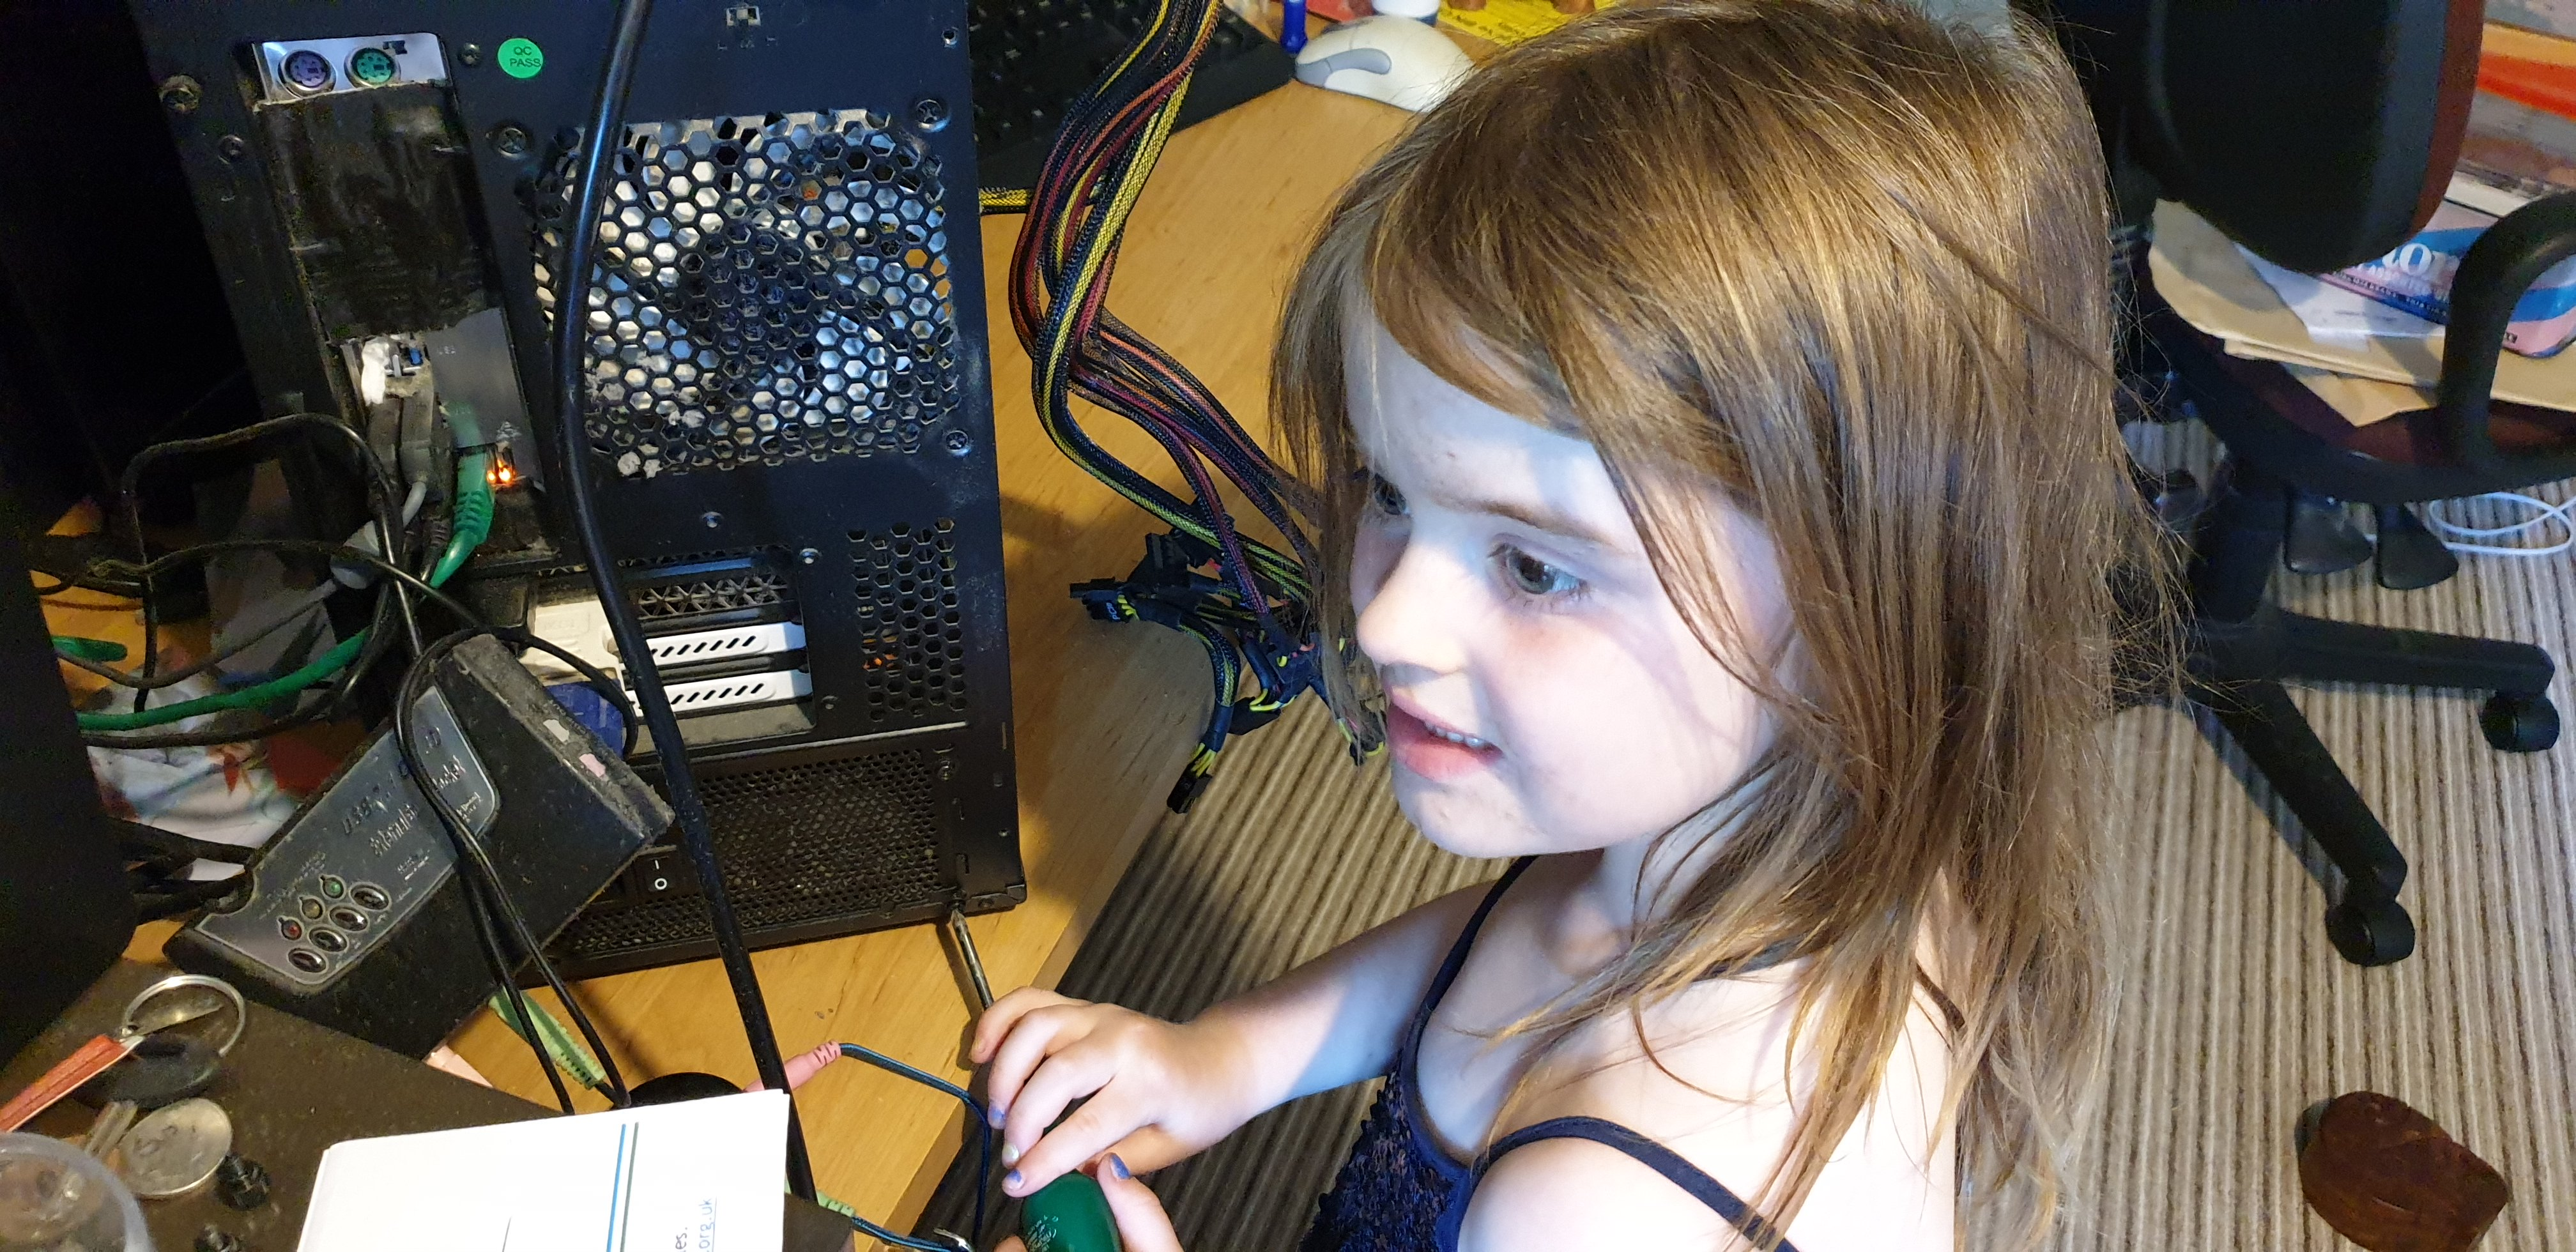 Annabel repairing her mother's computer.